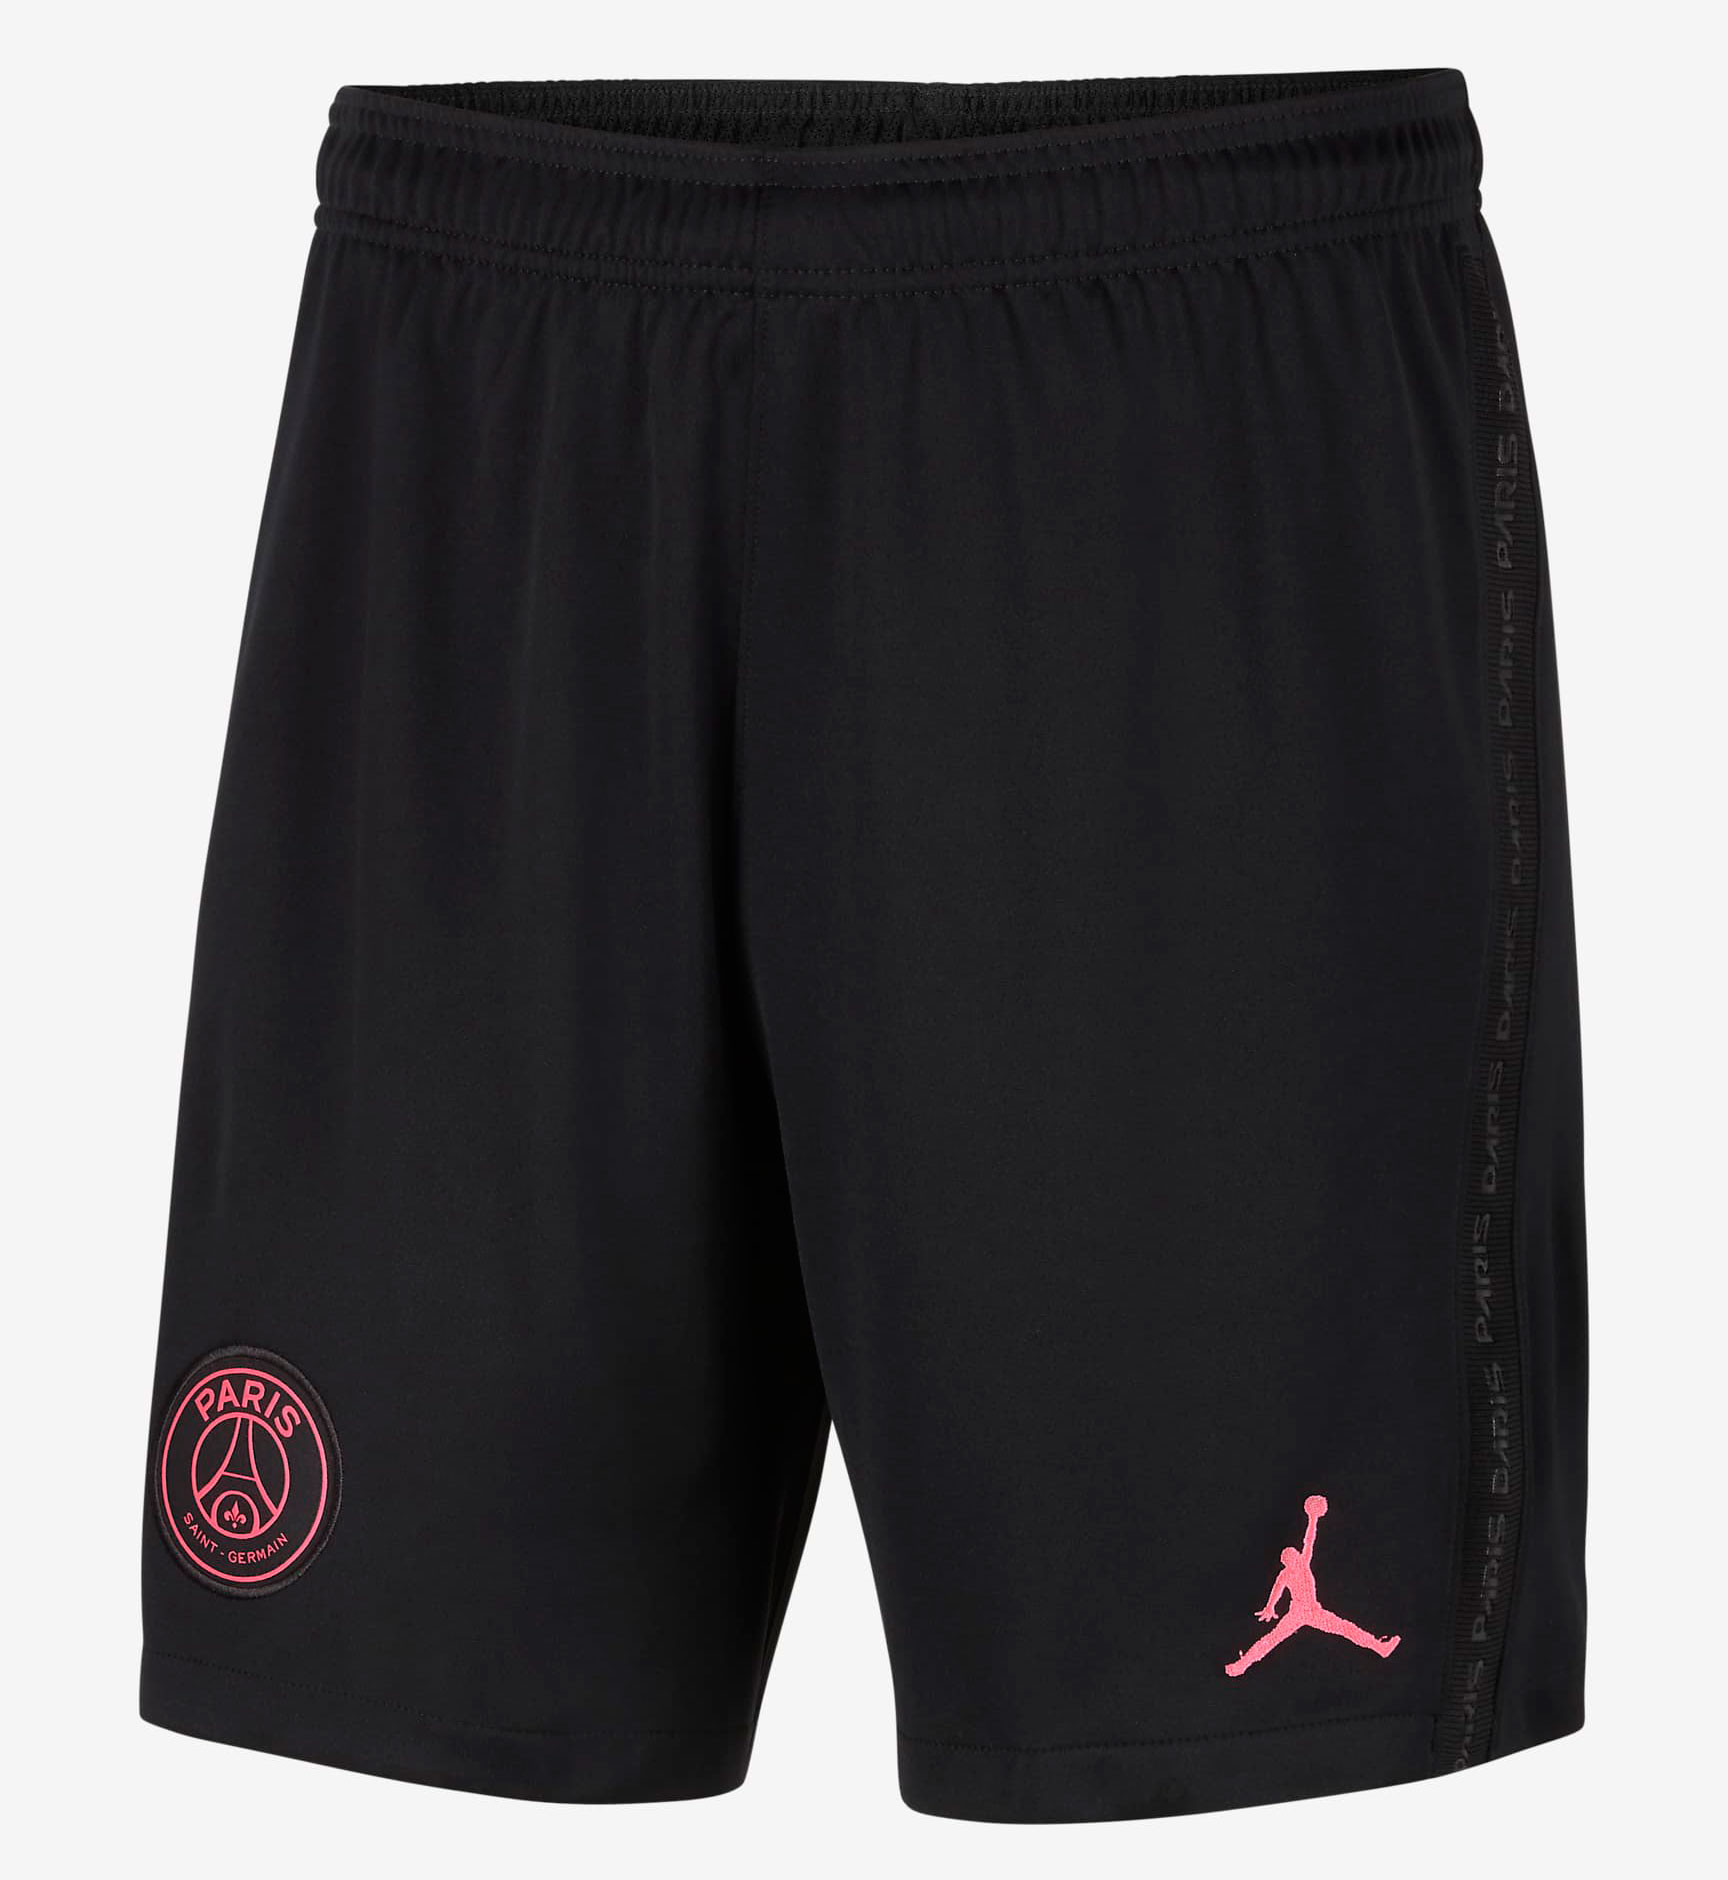 jordan-1-zoom-cmft-psg-paris-saint-germain-shorts-1